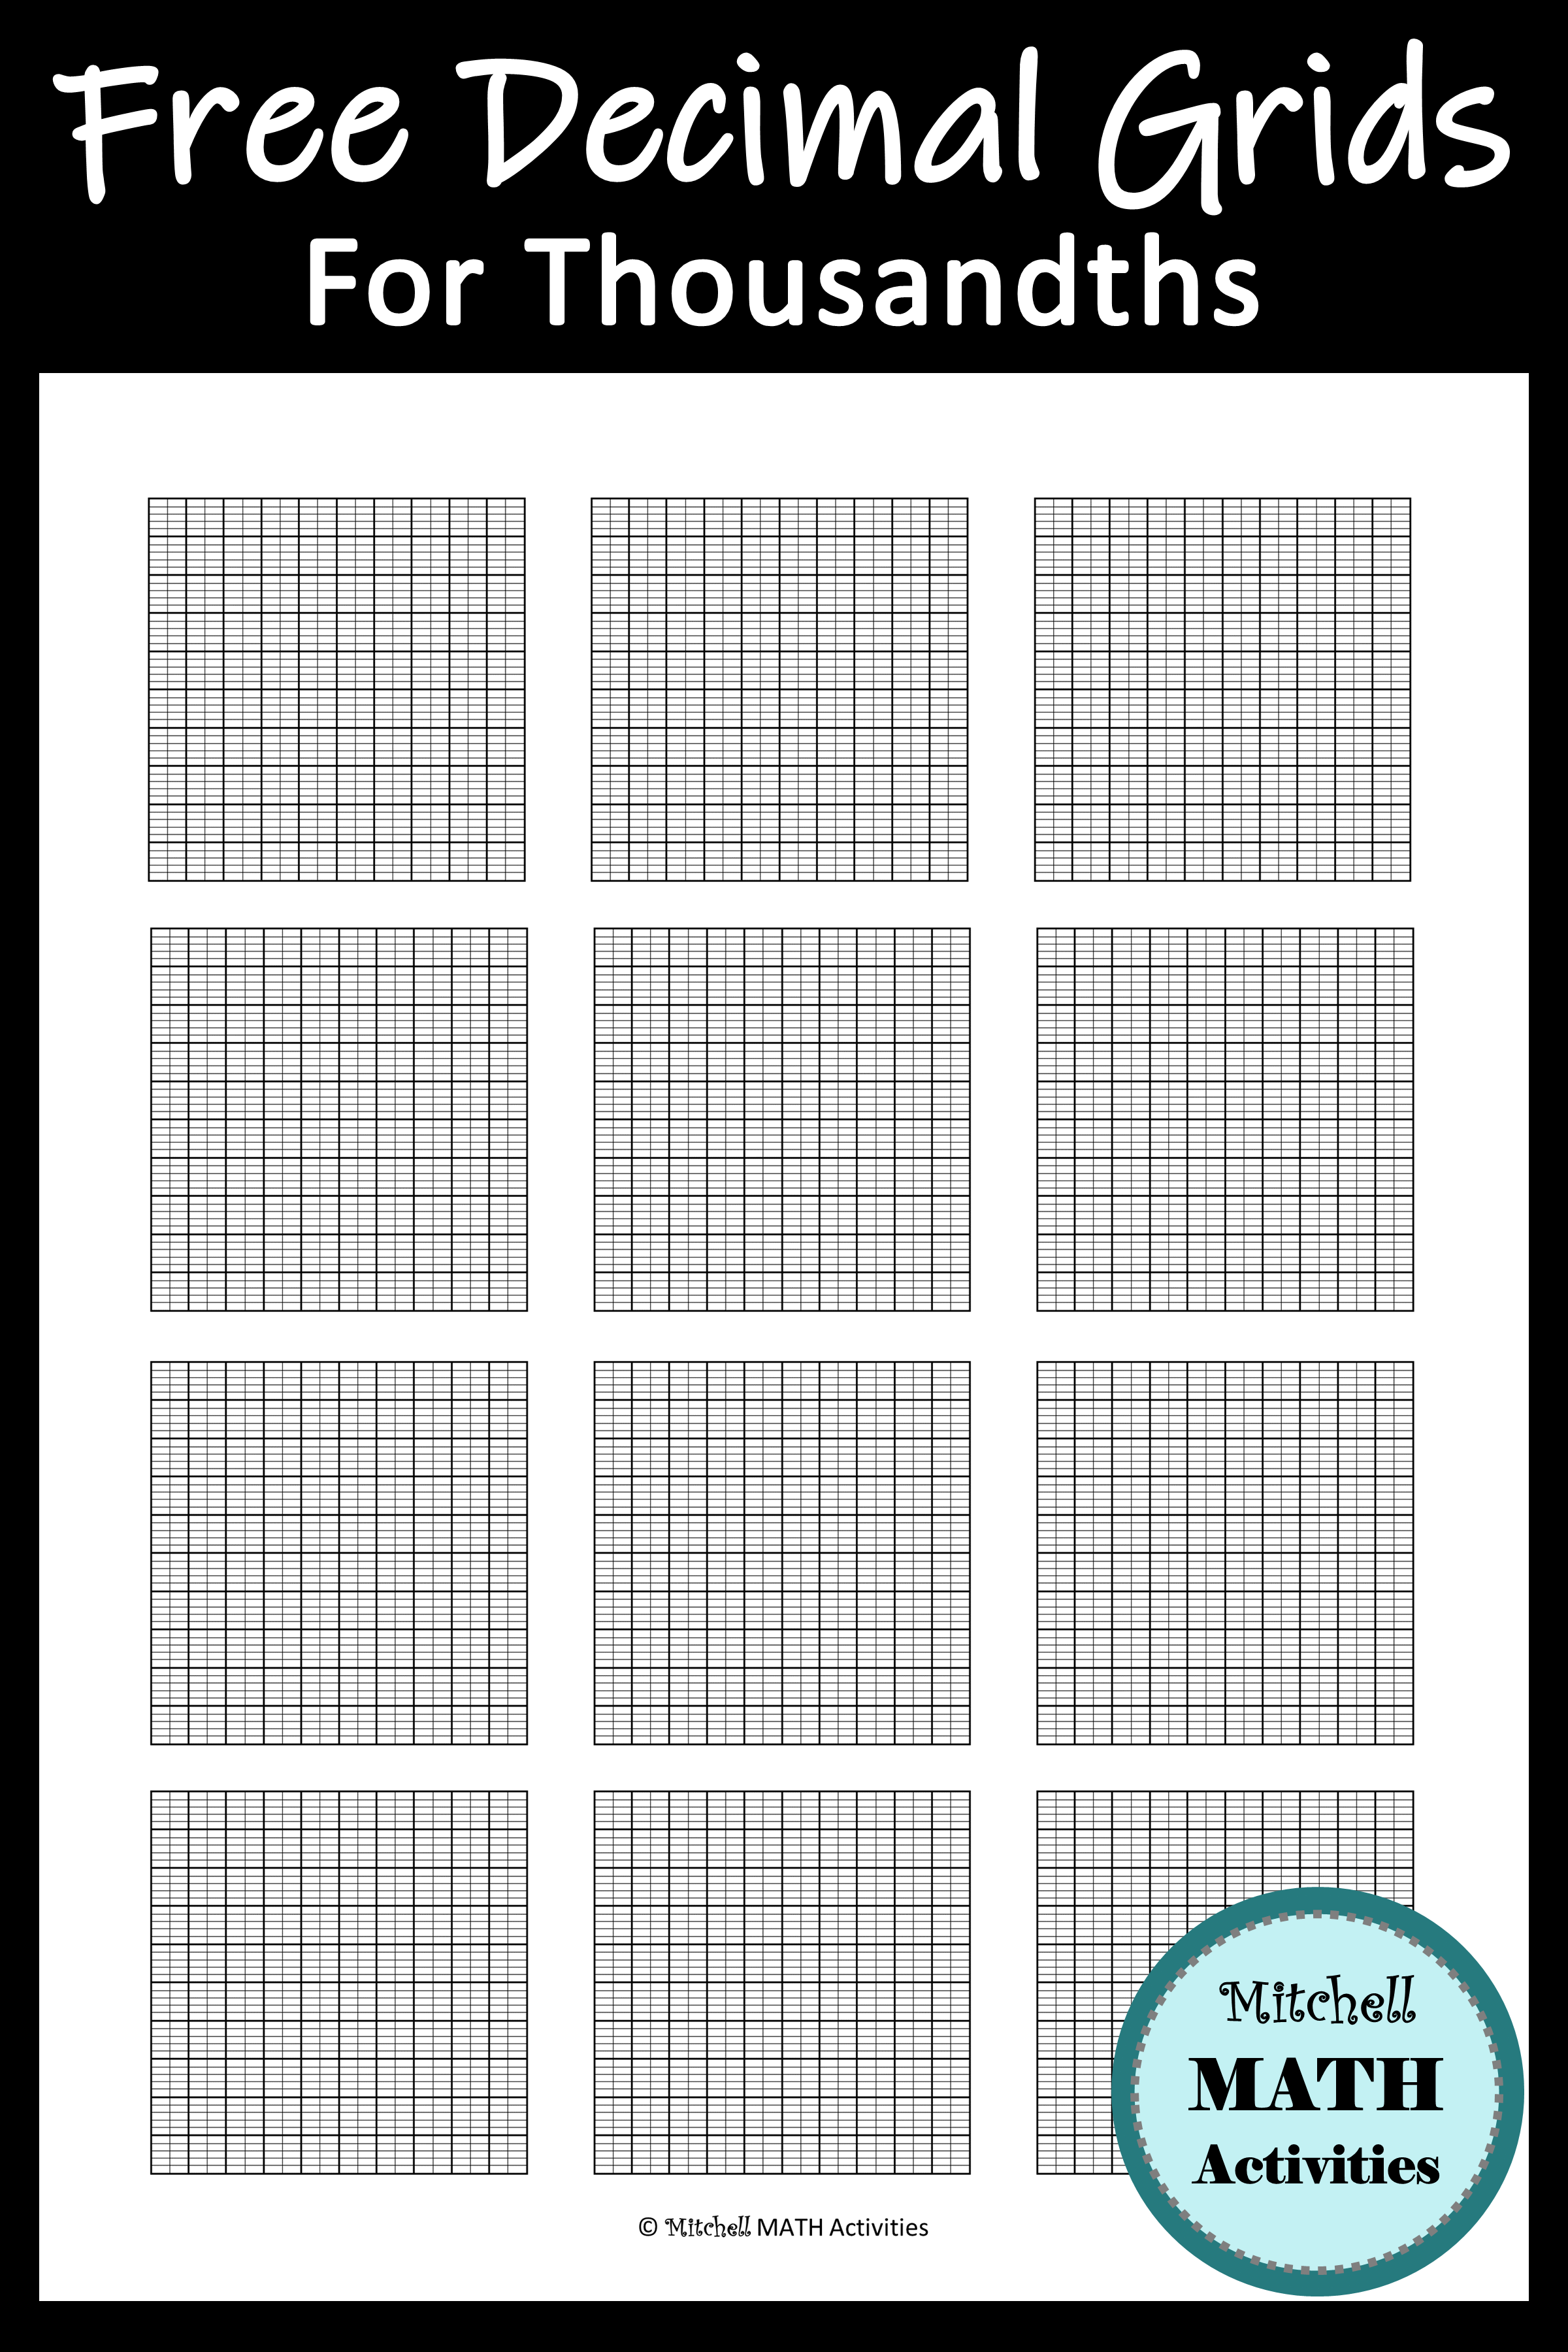 Free Printable Decimal Grid Models For Thousandths And Tips For Teaching Decimal Concepts Several Pages With Di Decimals Free Math Worksheets Fifth Grade Math [ 3600 x 2400 Pixel ]